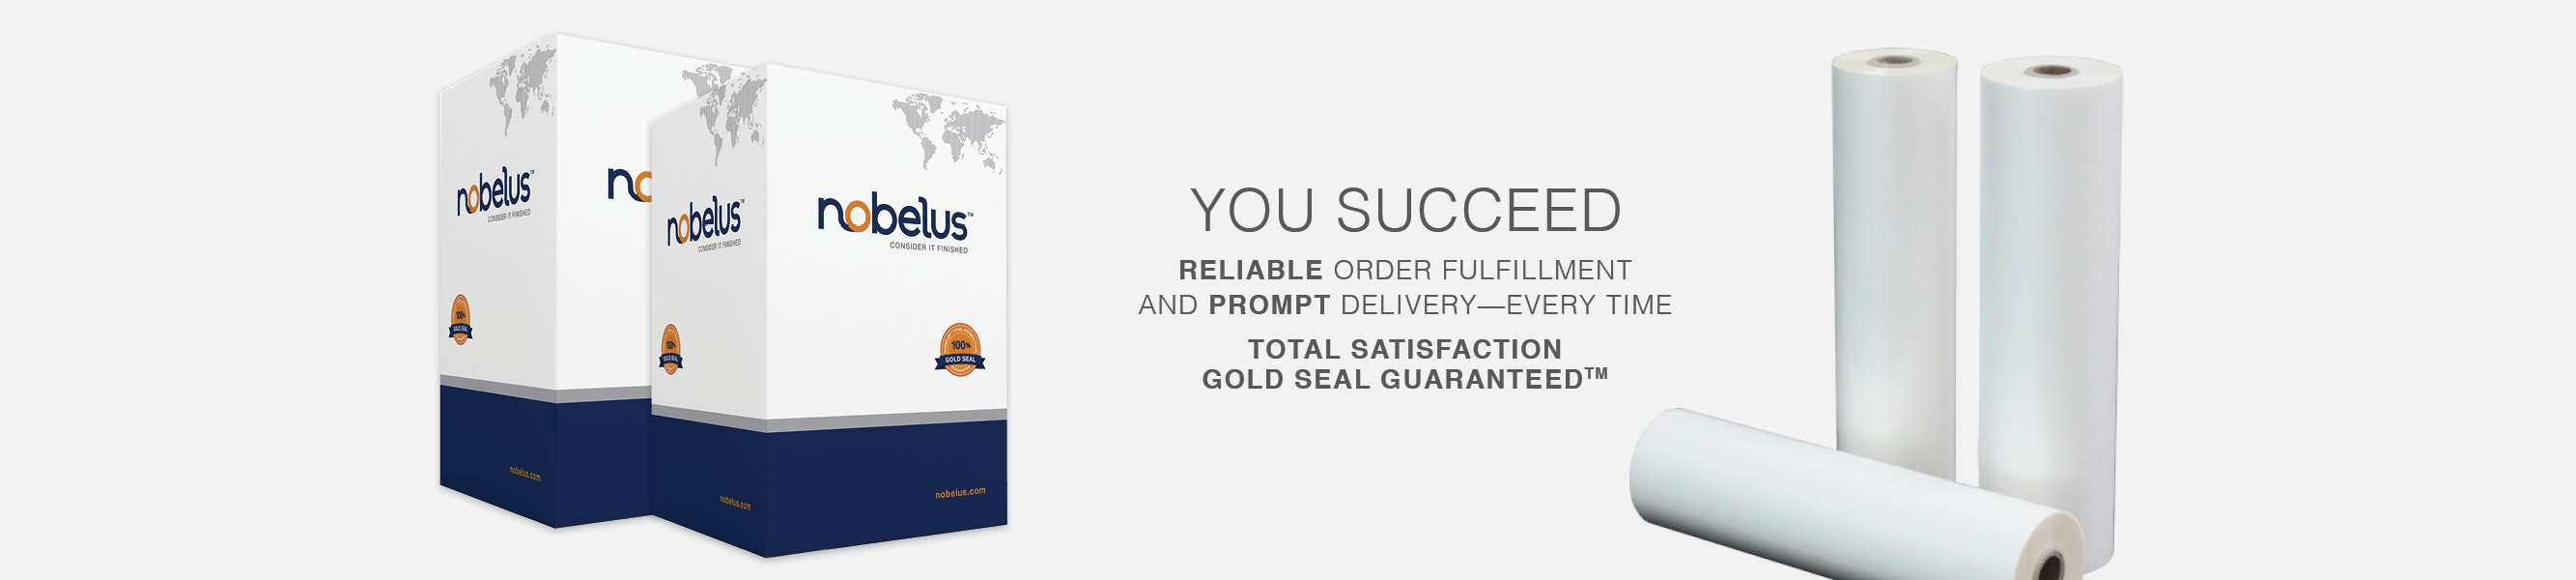 With Nobelus you succeed. Expect reliable order fulfillment and prompt delivery—every time. All our products are backed with our Total Satisfaction Gold Seal Guarantee.